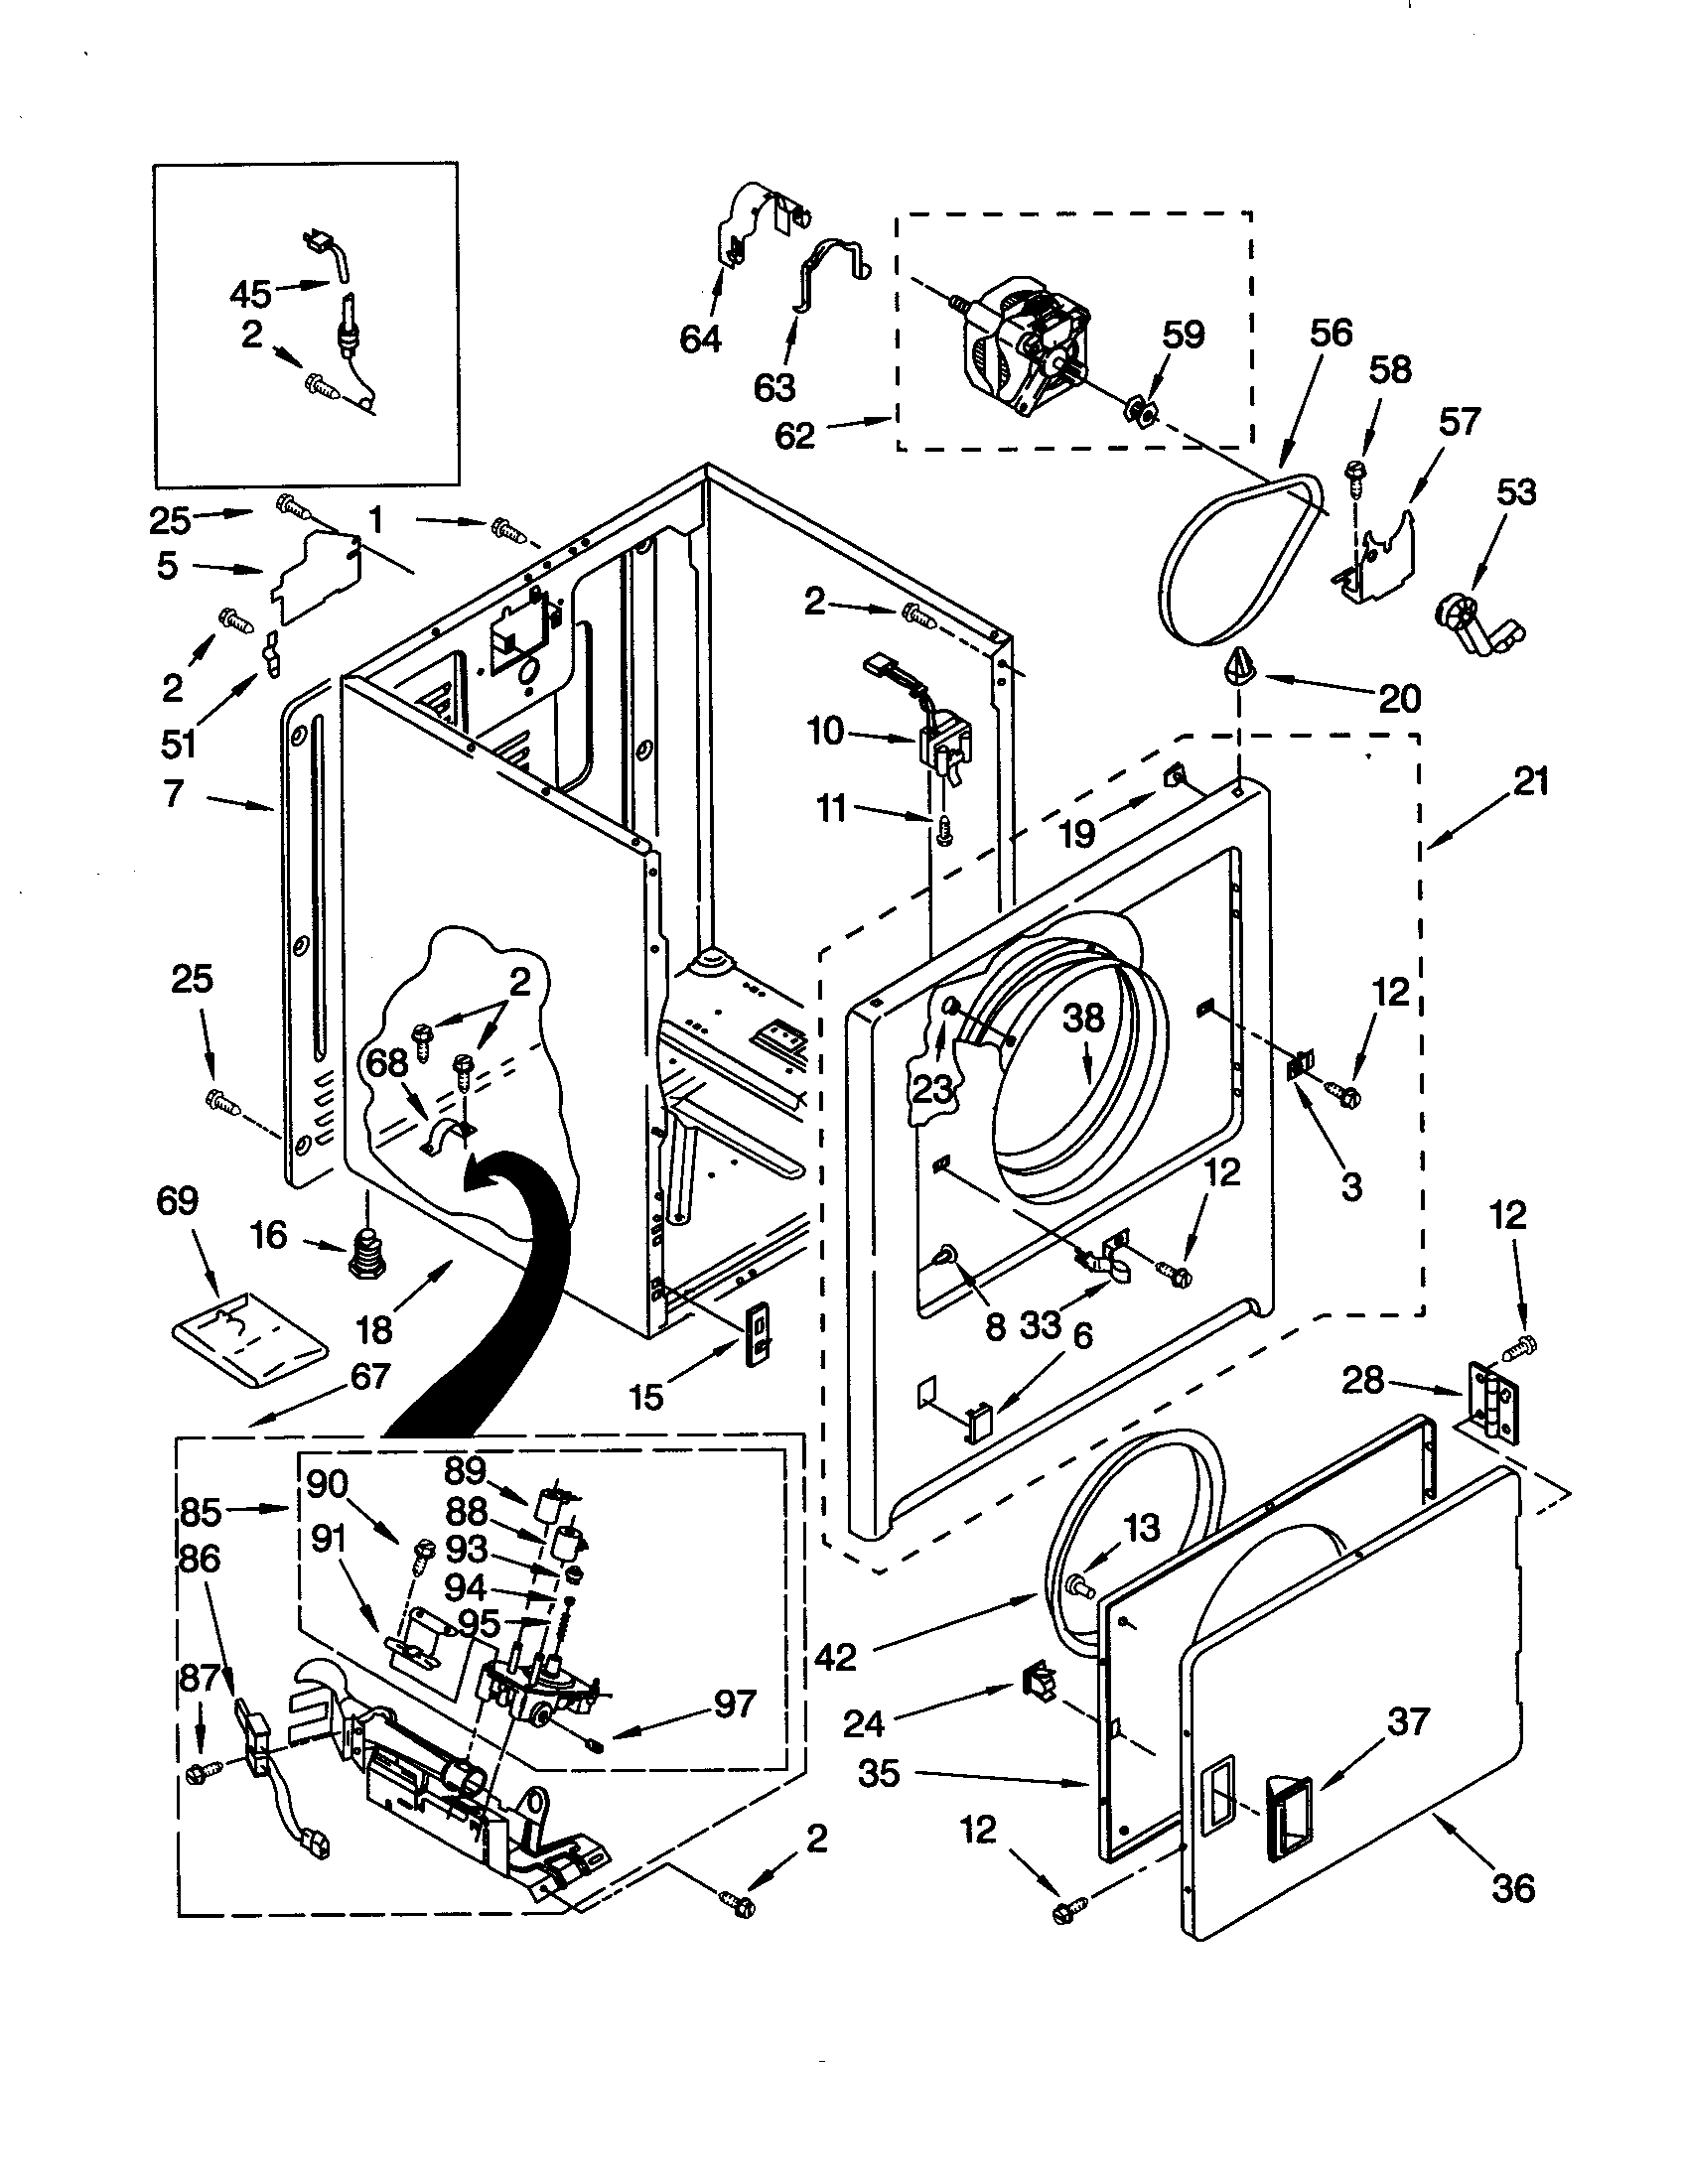 Compactor Wiring Diagram Simple Sears Trash Explained Diagrams For Dummies